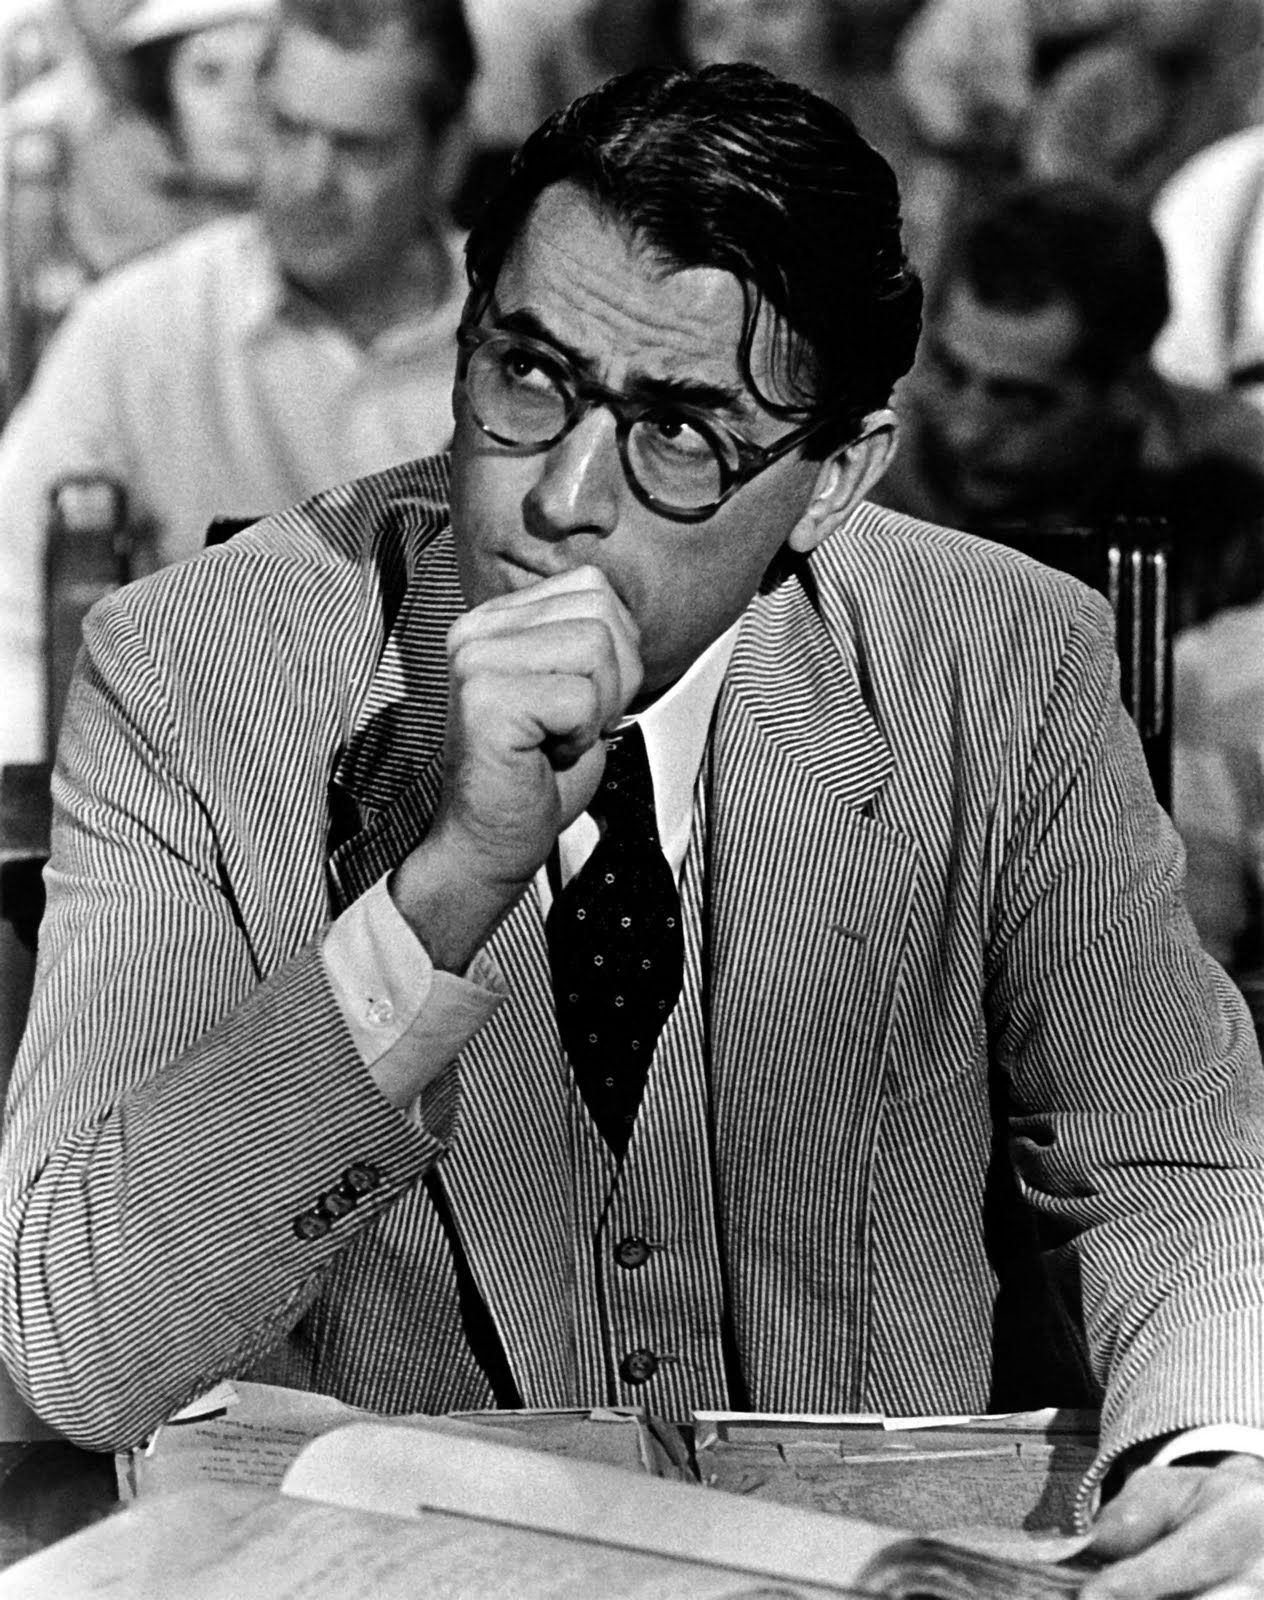 Gregory Peck As Atticus Finch With Documents In Court In To Kill A